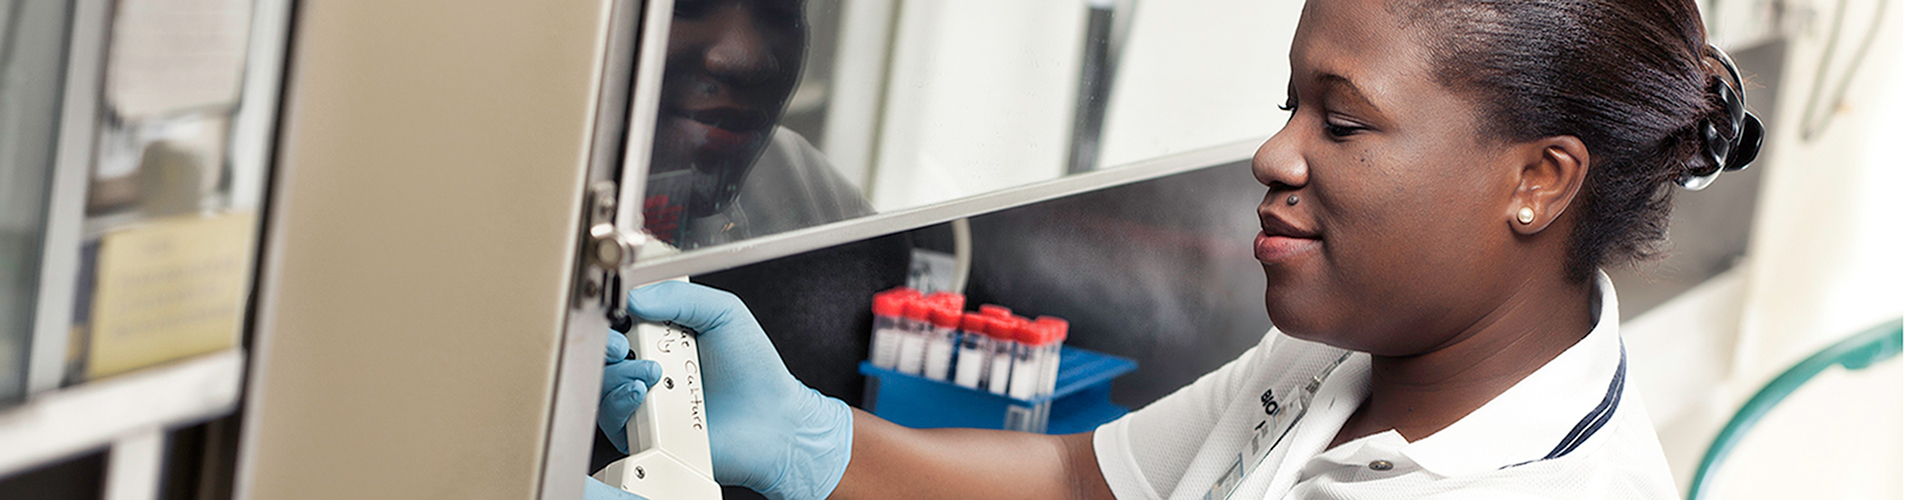 Thaler Center for HIV and Retrovirus Research | University